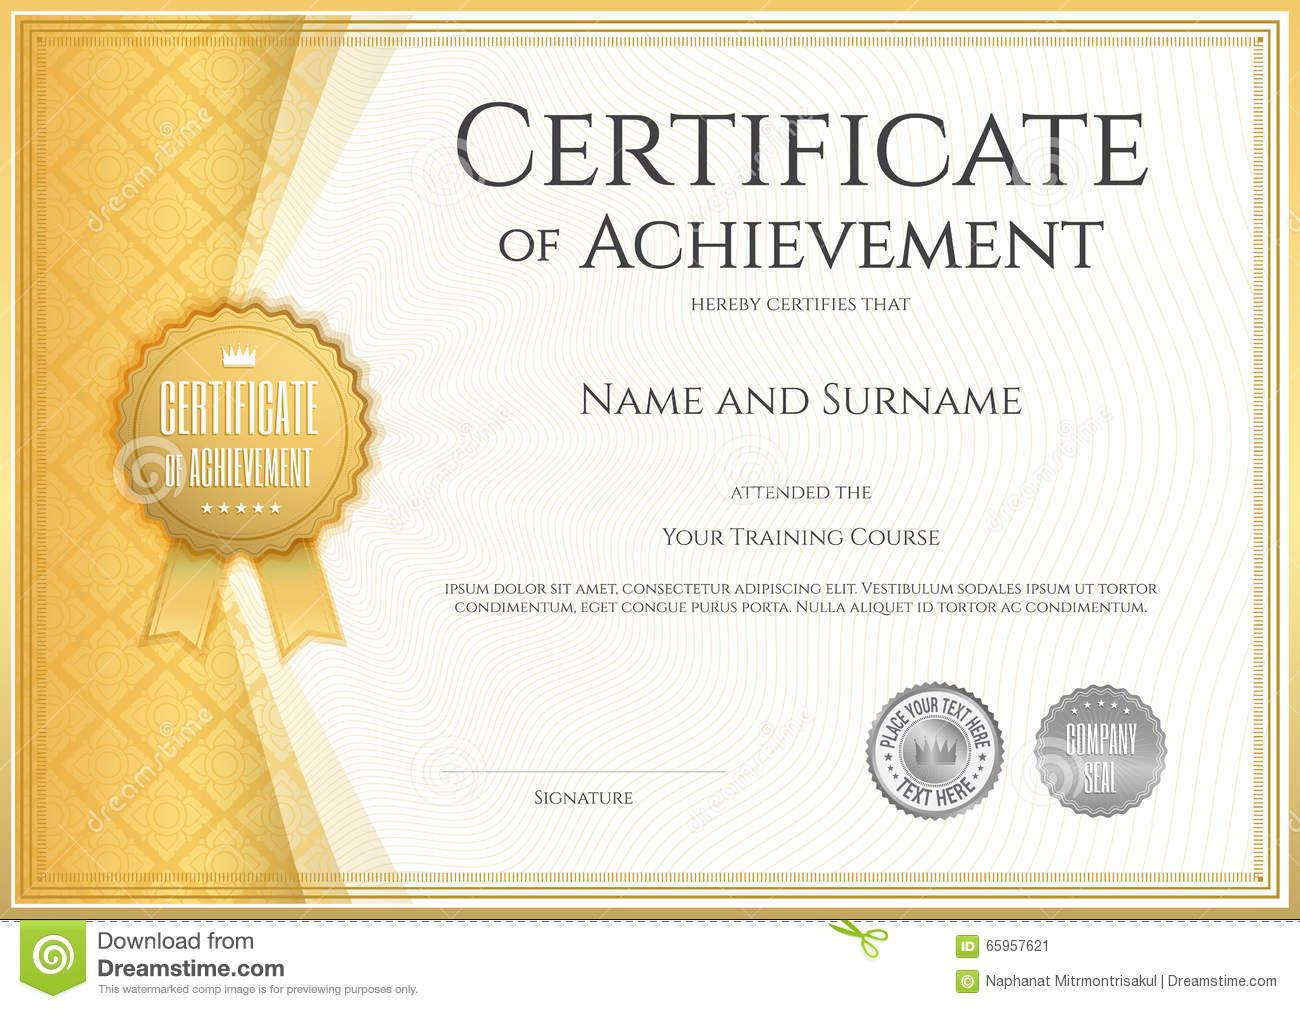 Certificate Of Achievement Army Template 006 Template Ideas